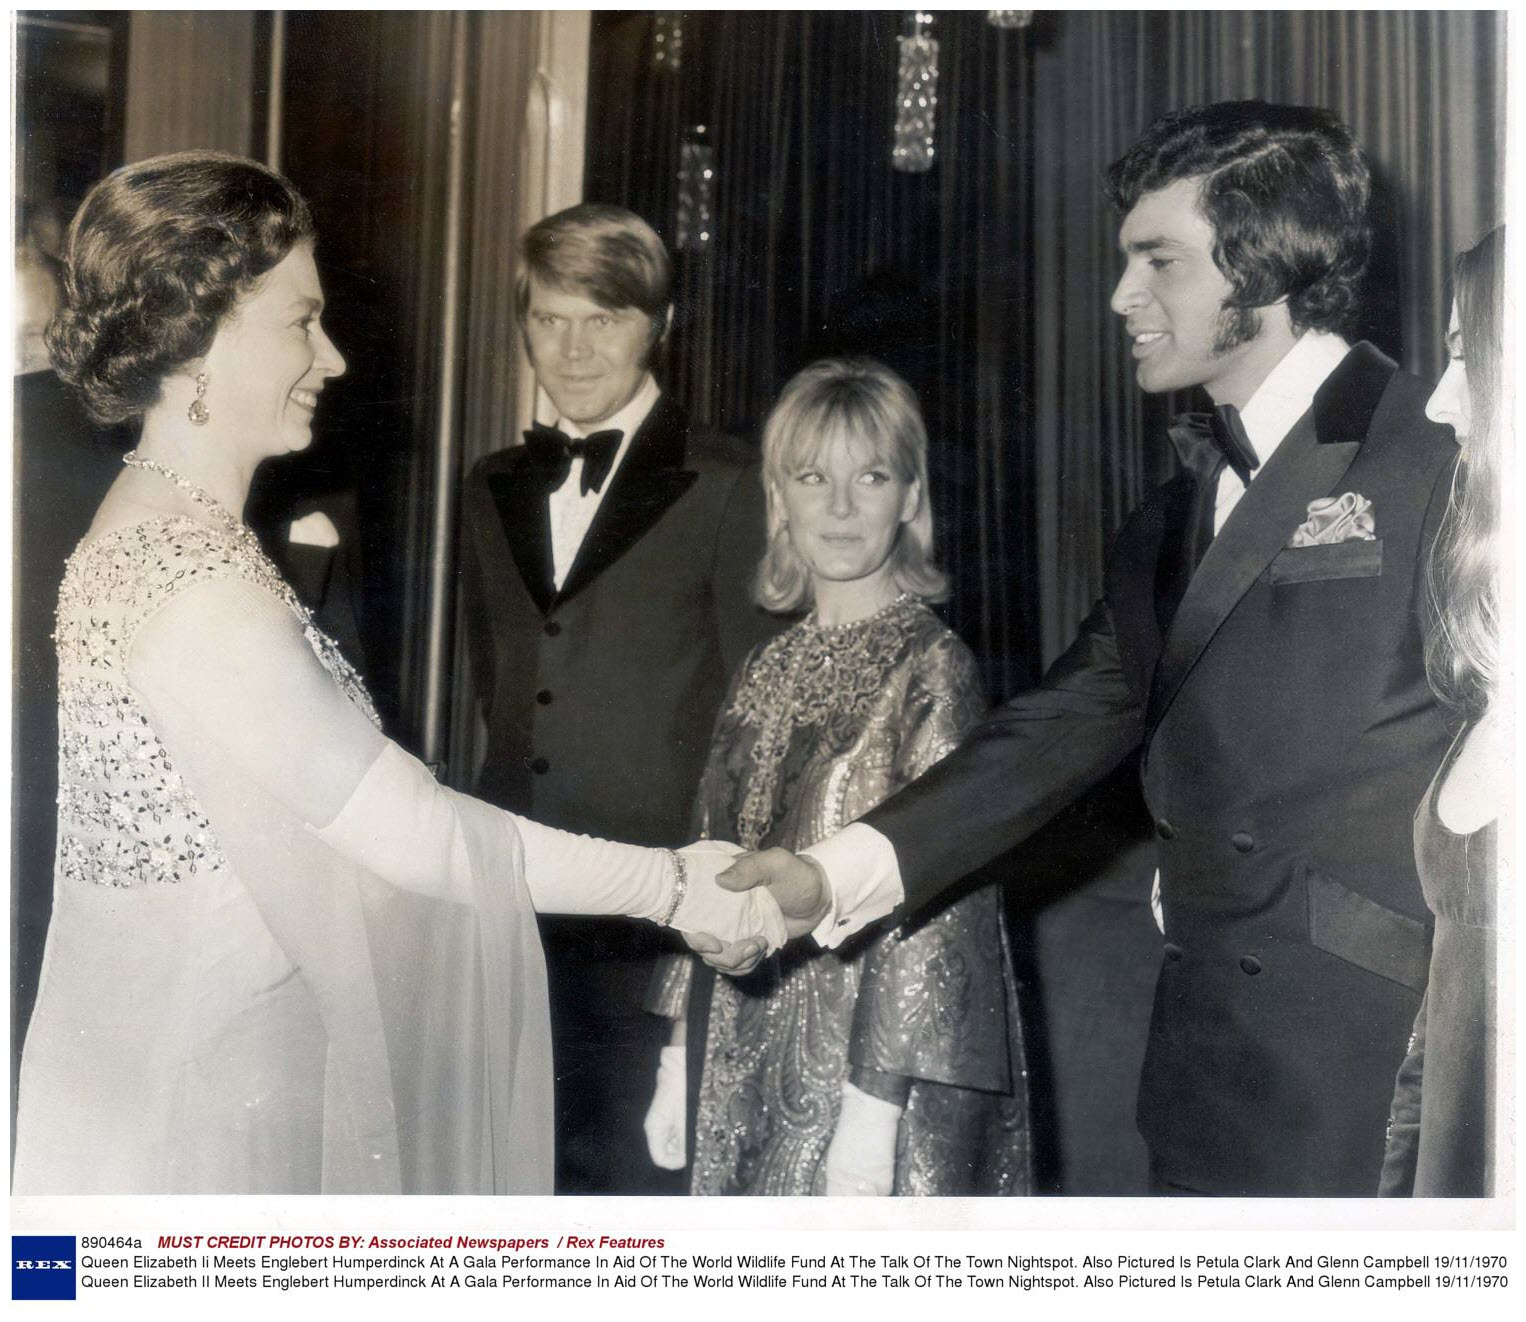 LARGE PRINT OF GLEN CAMPBELL MEETS QUEEN ELIZABETH WORLD WILDLIFE GALA 1970.jpg